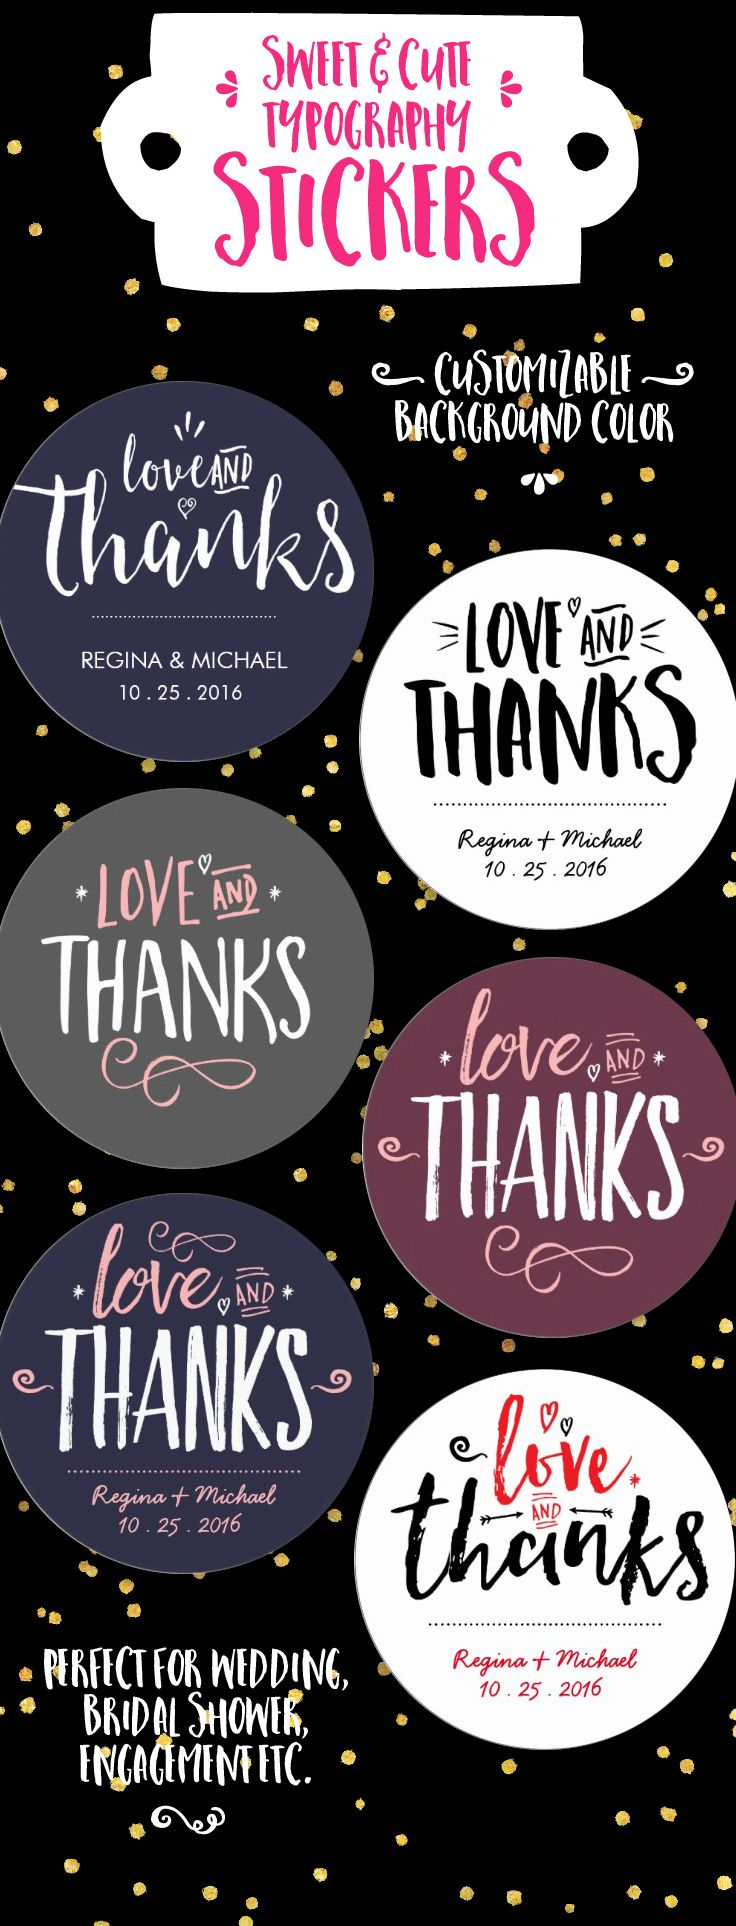 Sweet and cute typography stickers Love and